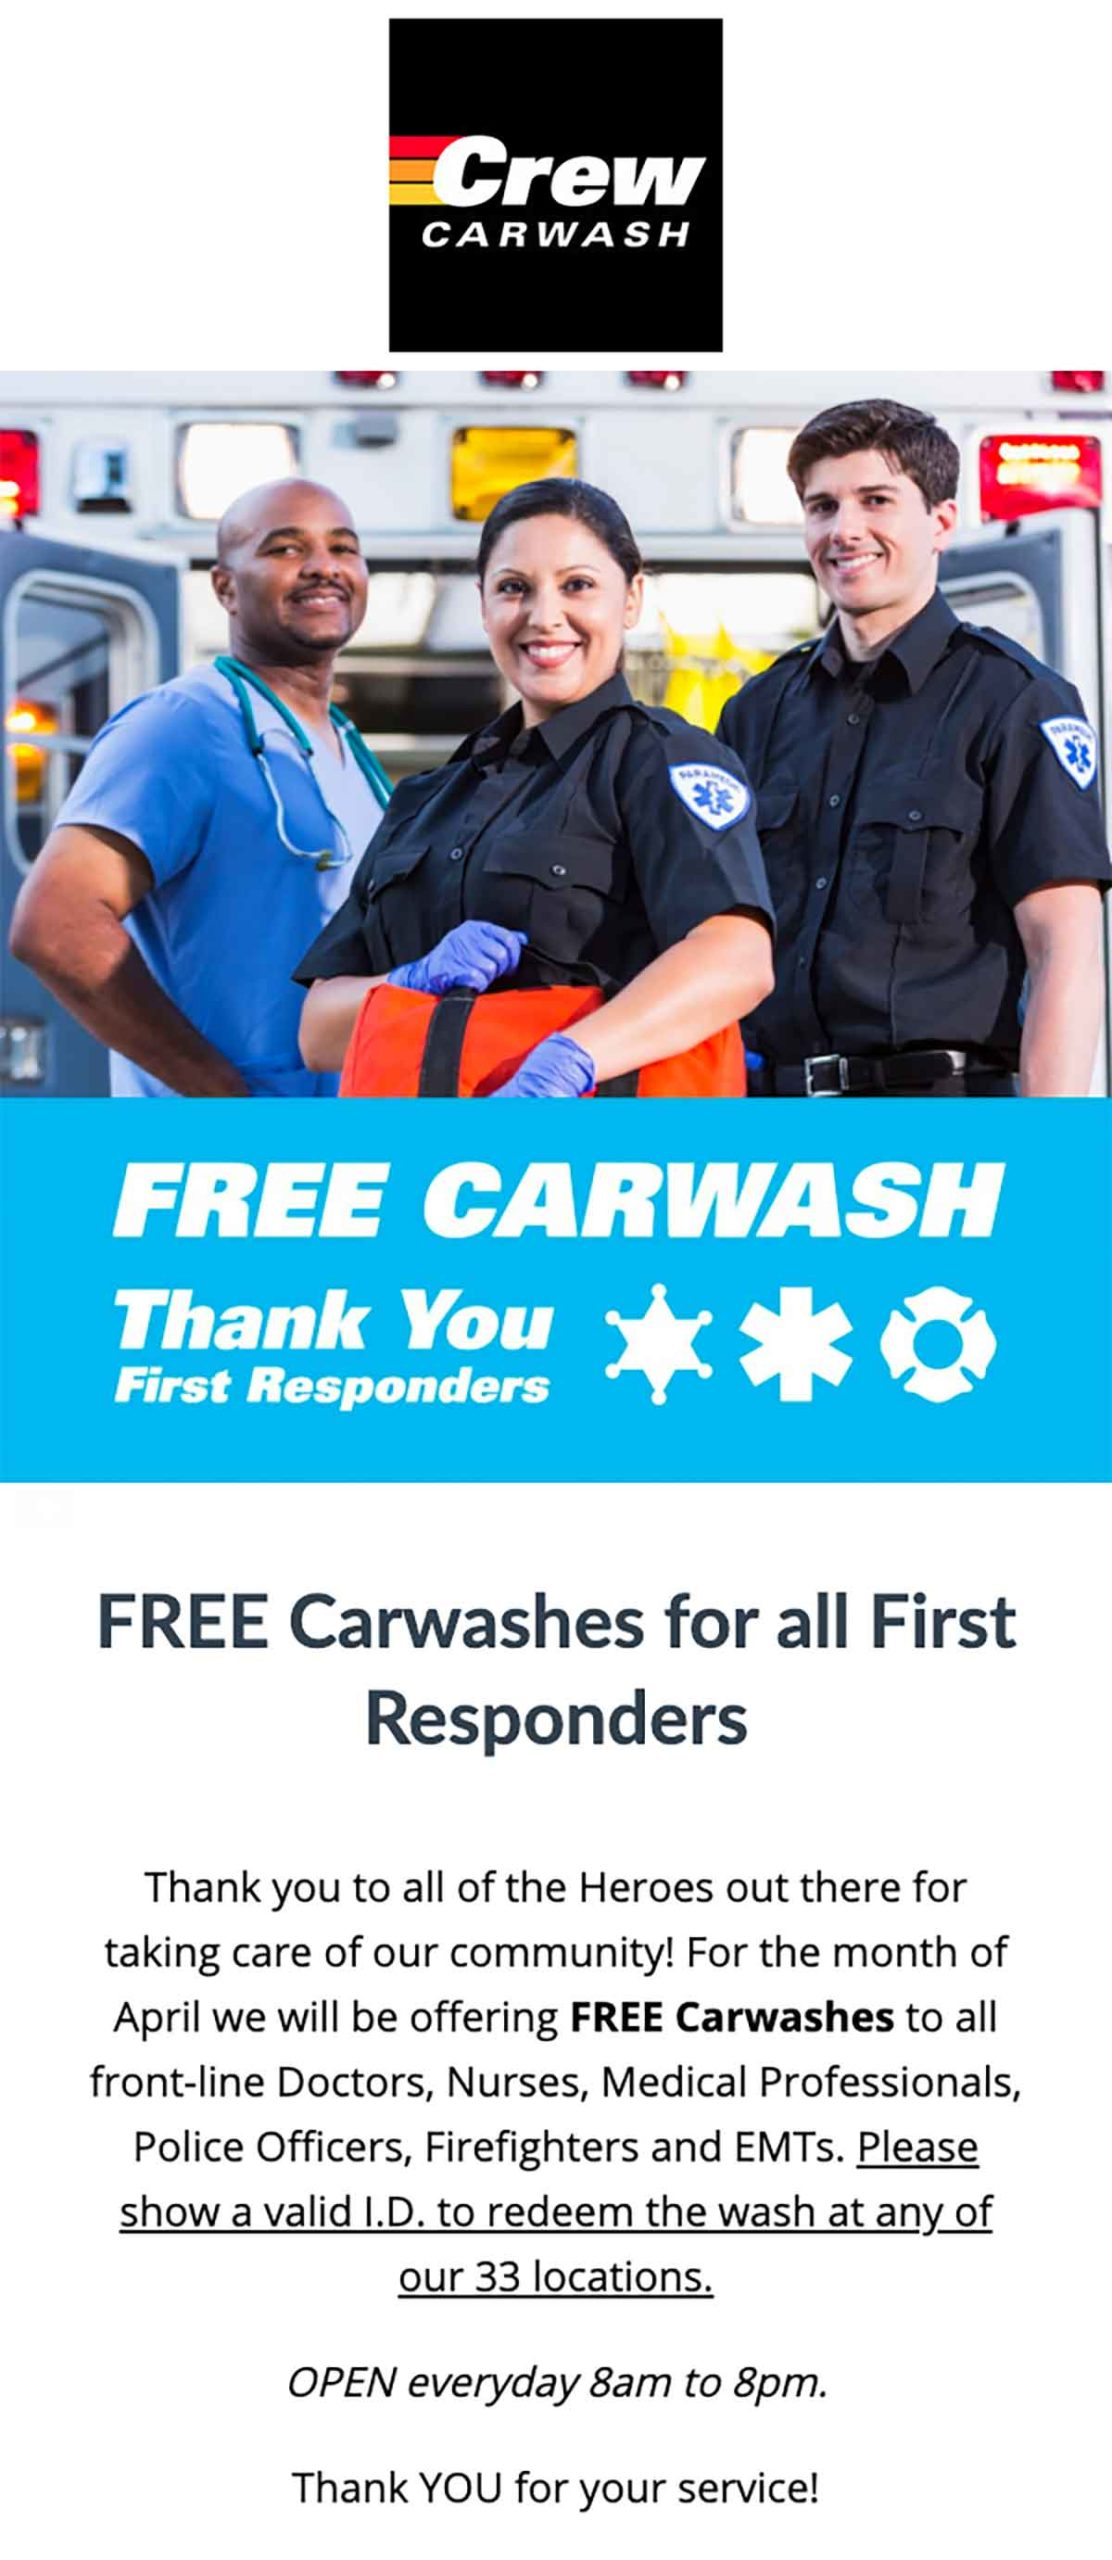 Crew Carwash: Free Carwashes for First Responders